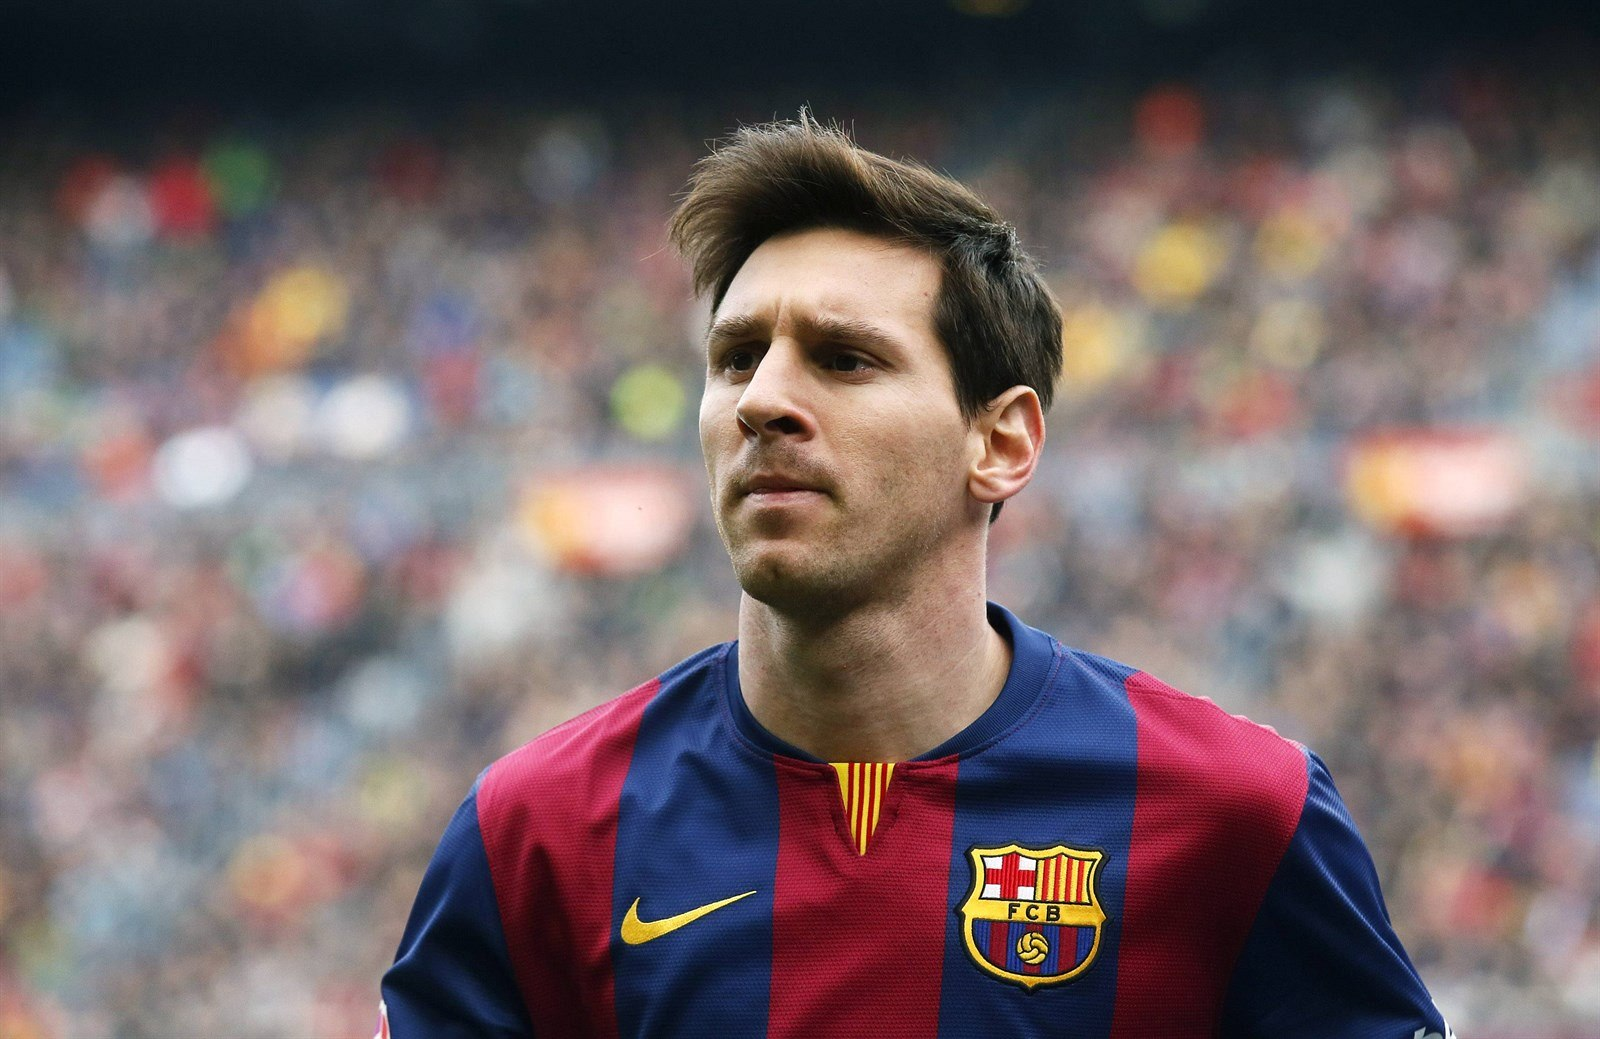 Download Messi HD Wallpaper Free Download Gallery